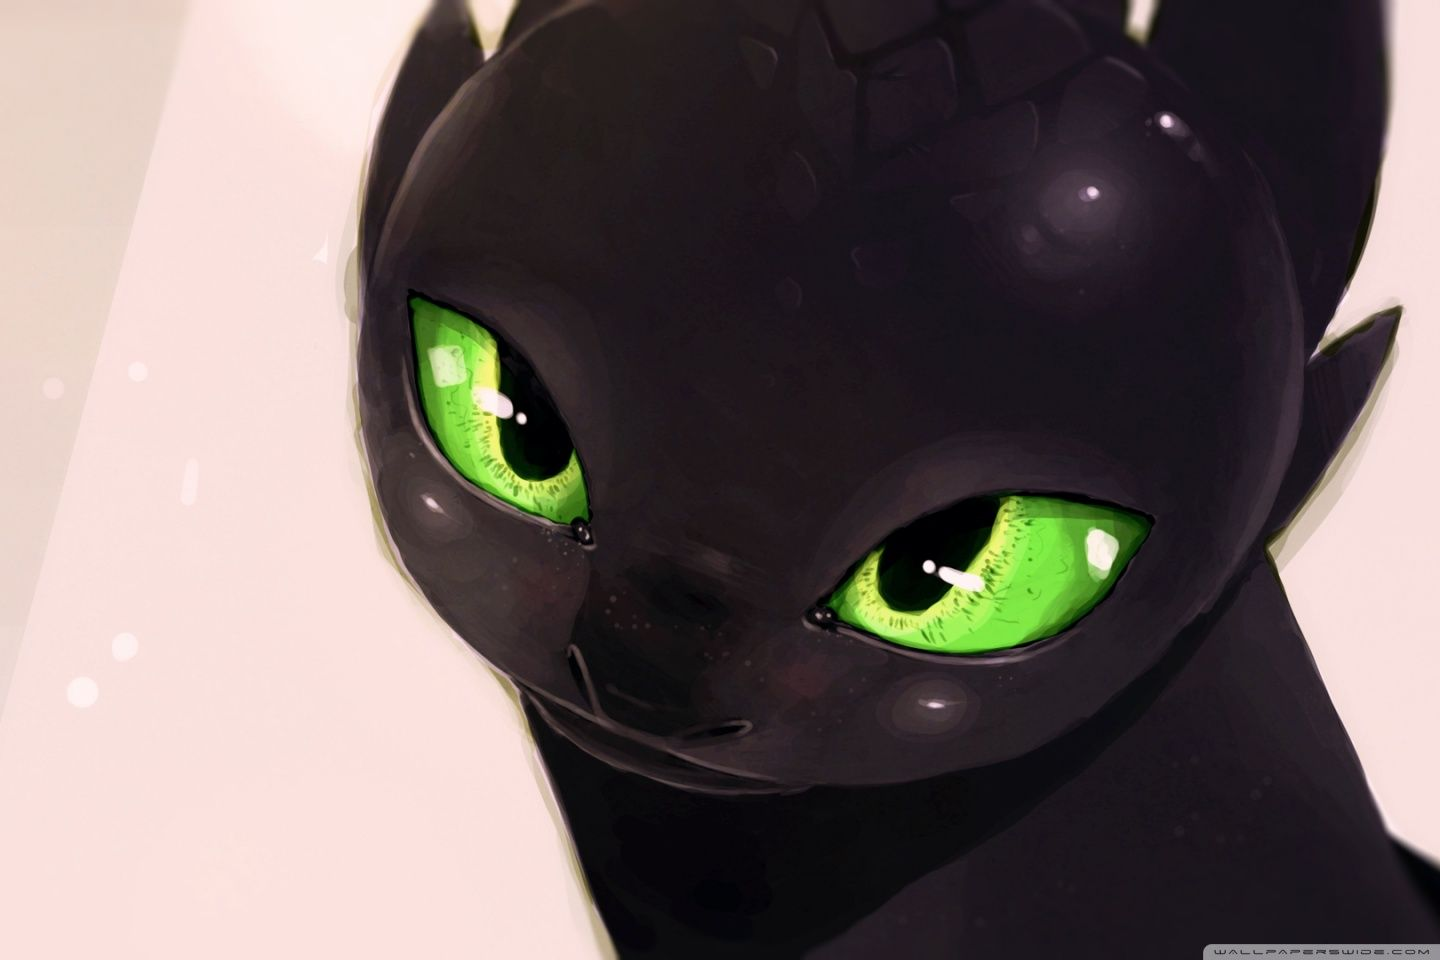 Toothless Iphone Wallpaper 36 Image Collections Of Wallpapers How To Train Your Dragon Toothless Wallpaper Art Wallpaper